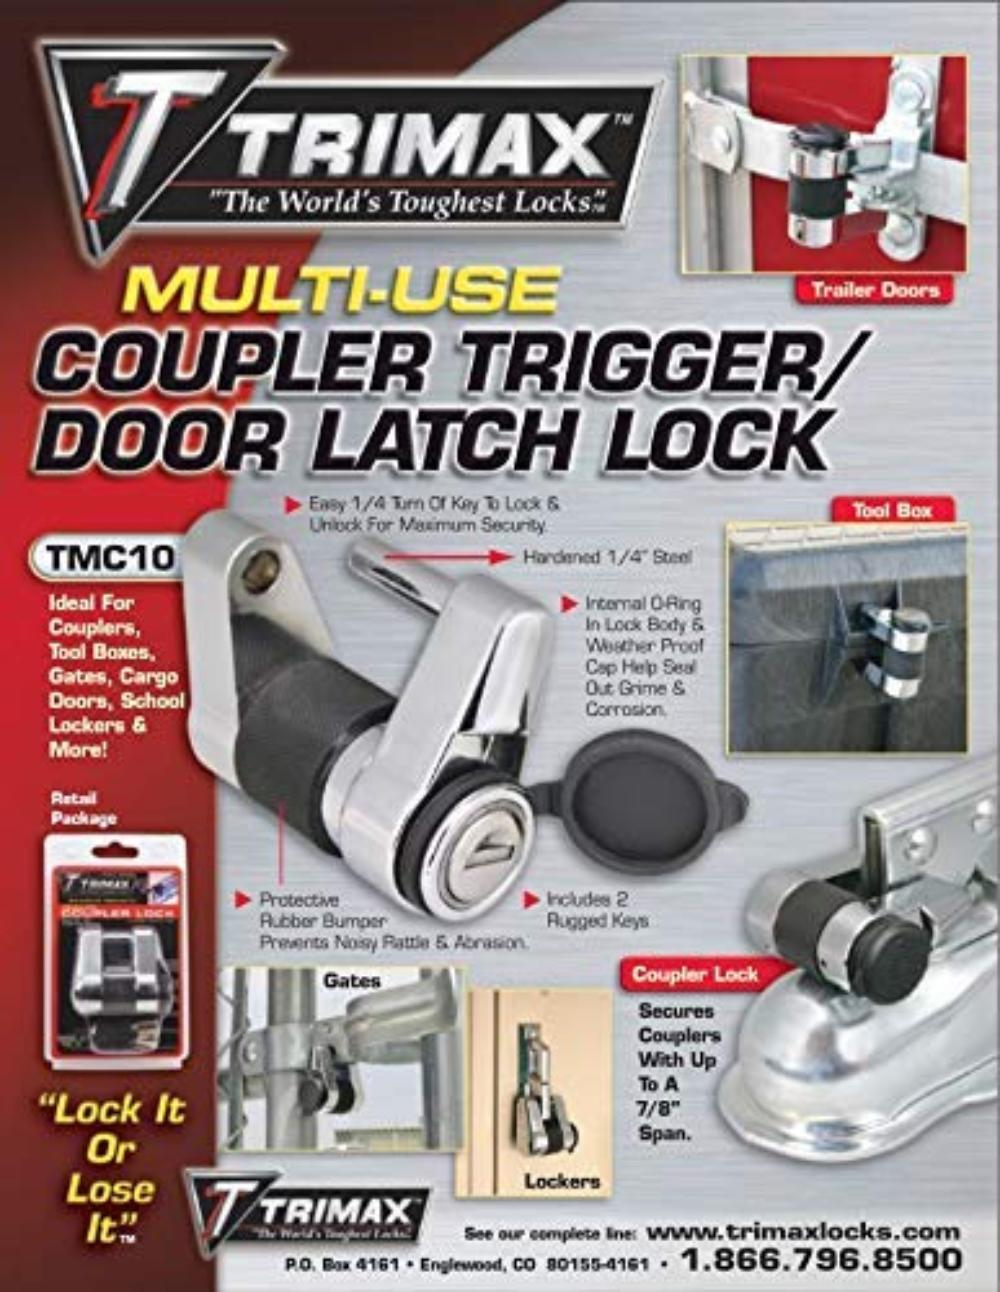 Trimax TMC10 Coupler//Door Latch Lock 4Pack fits couplers to 3//4 Span